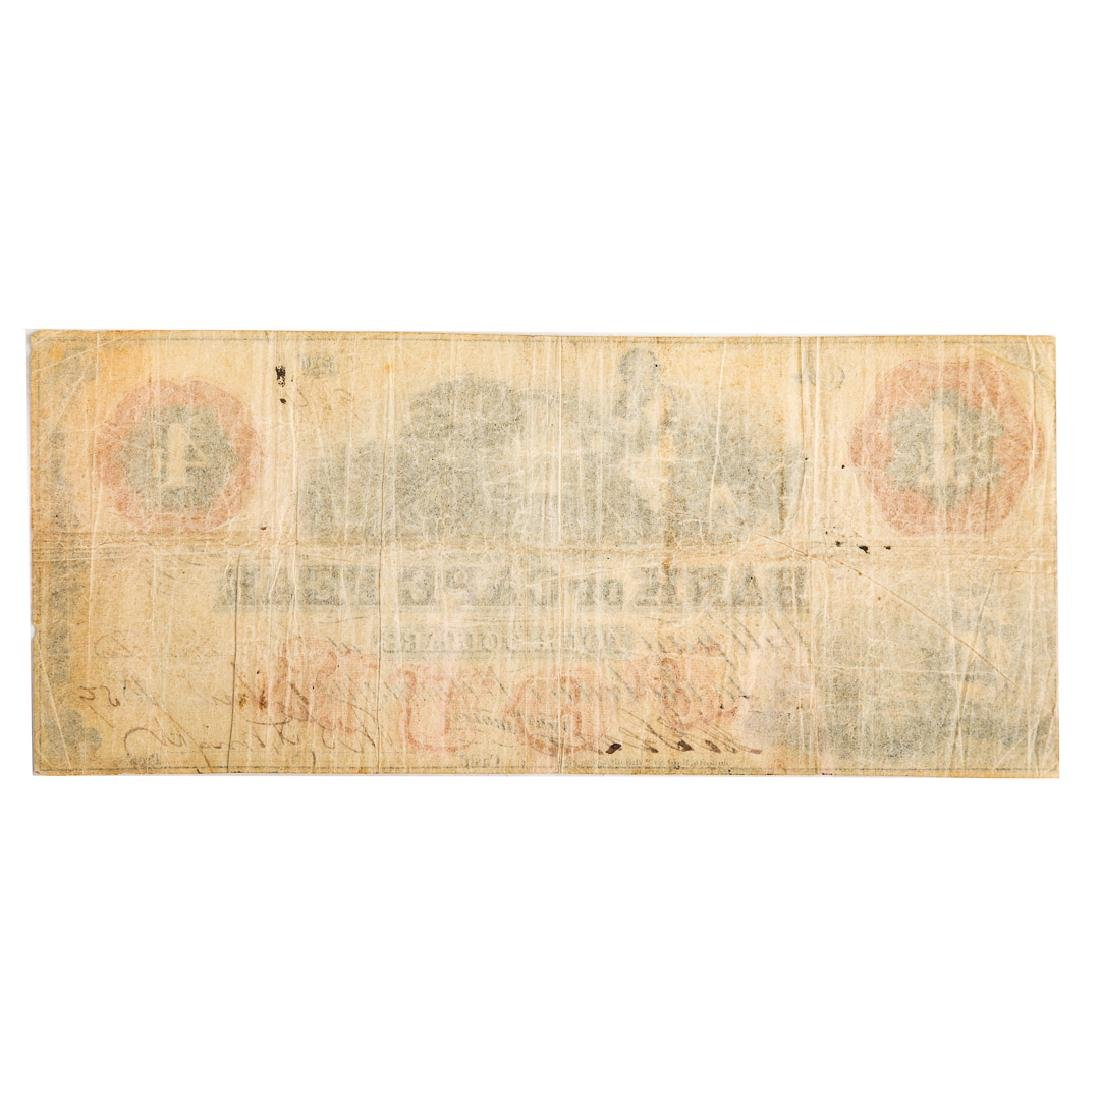 [US] $4 Bank of Cape Fear, 11/1/1859 Wilmington - 2